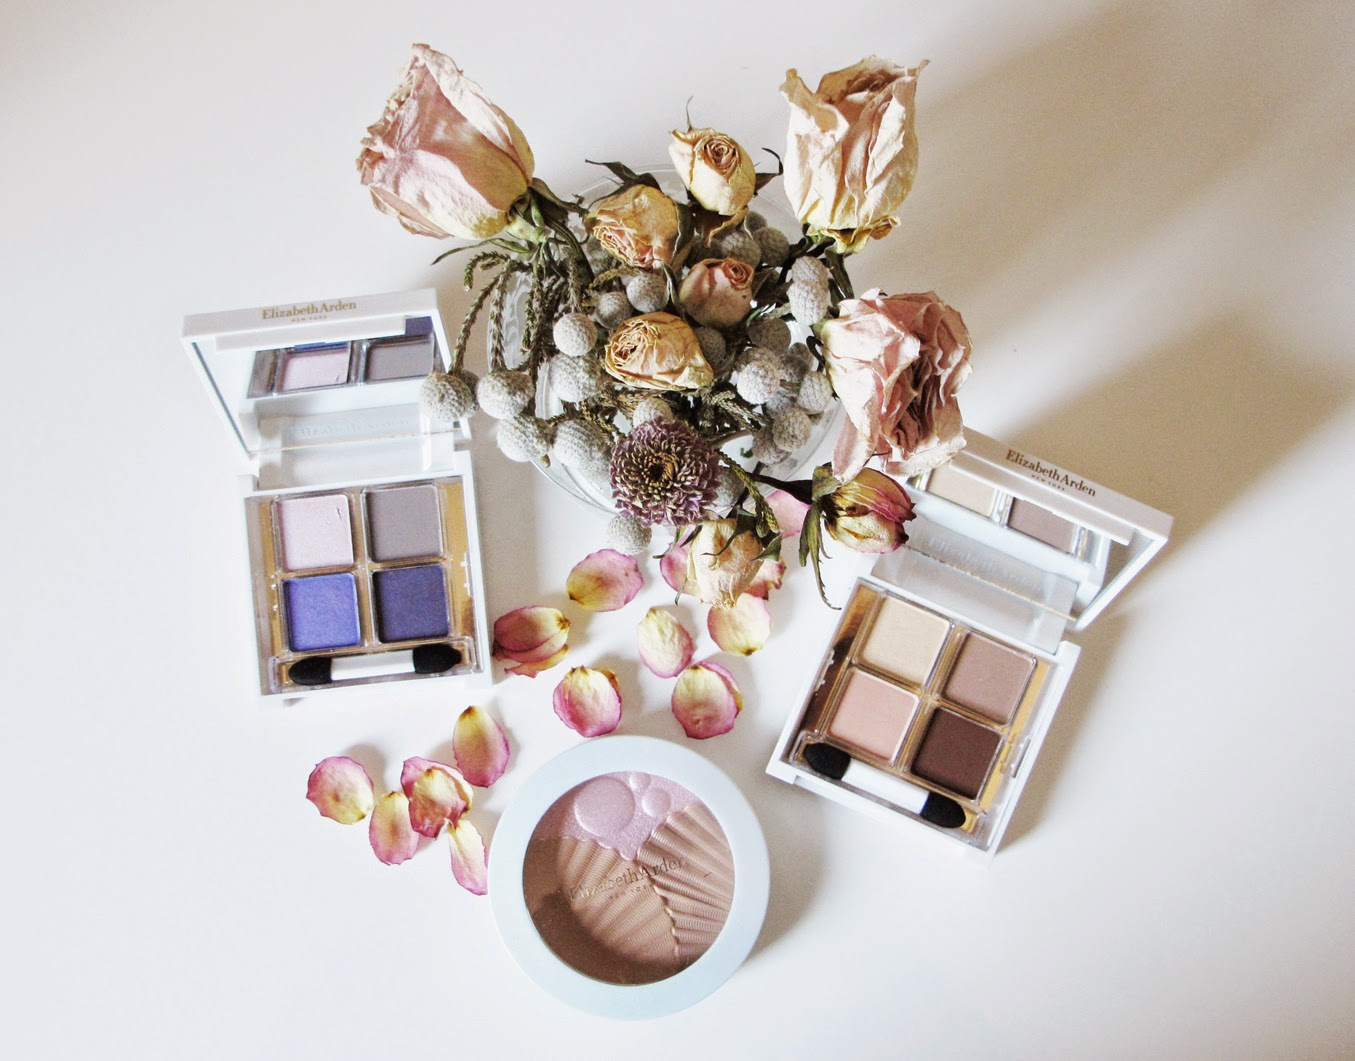 Sunkissed Pearls Color Collection Elizabeth Arden